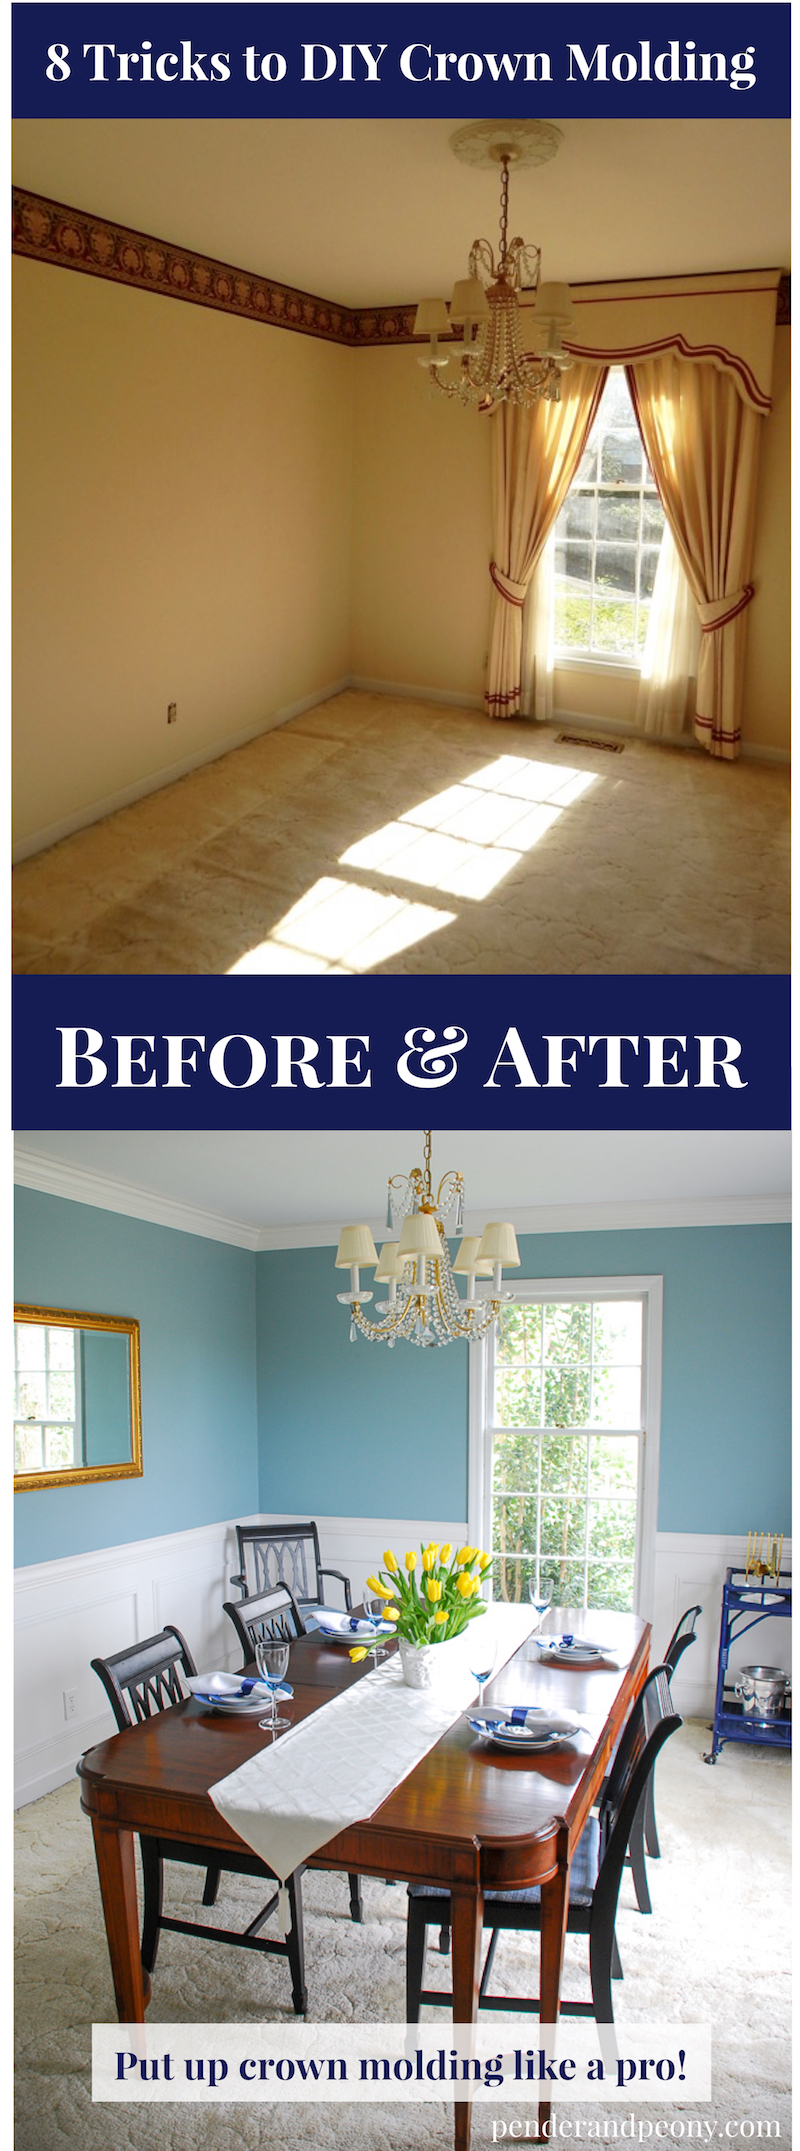 before and after of dining room with DIY crown molding